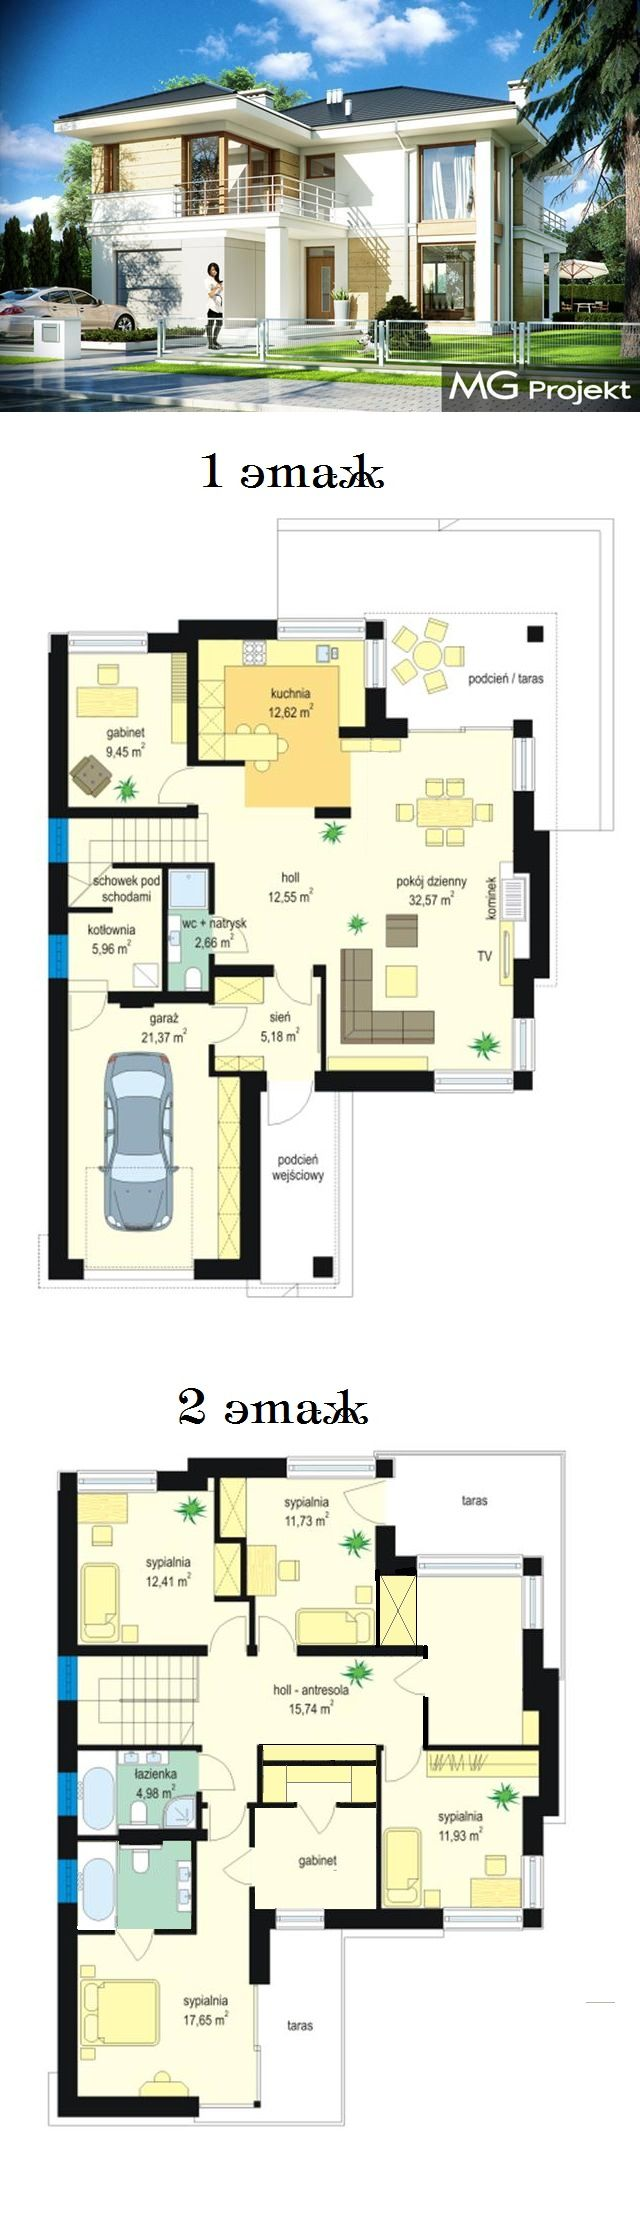 104 best house plans images on pinterest architecture homes and summer beach home but need to add bath to each bedroom and powed room